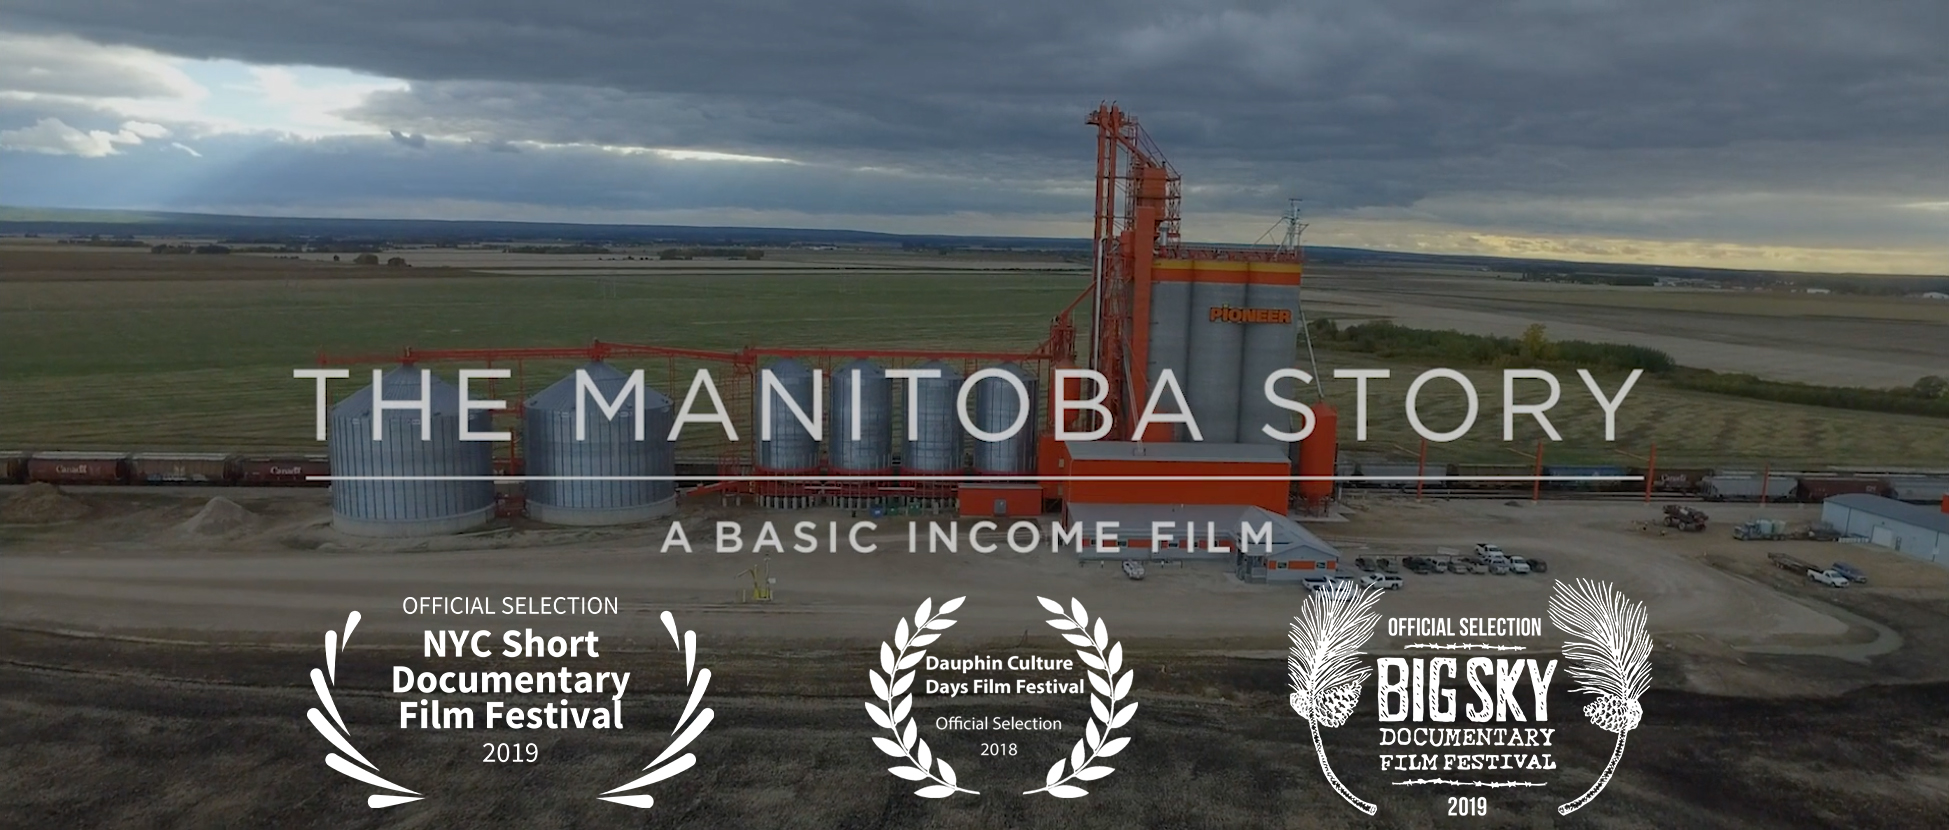 Still from The Manitoba Story film showing title sequence